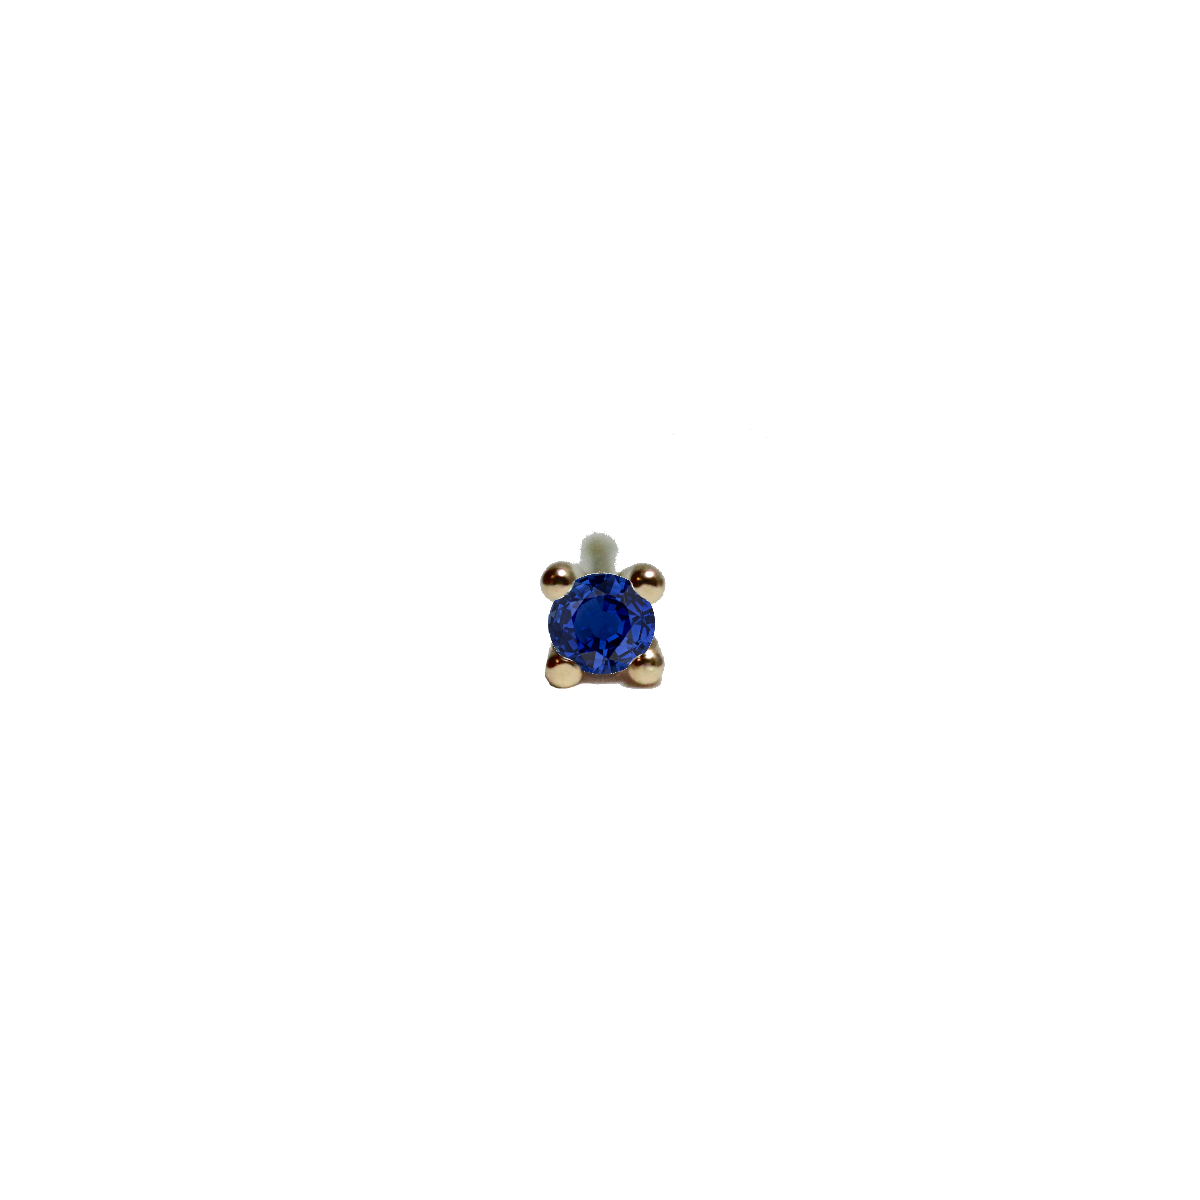 Tiny Pointy Earstud - Blue sapphire